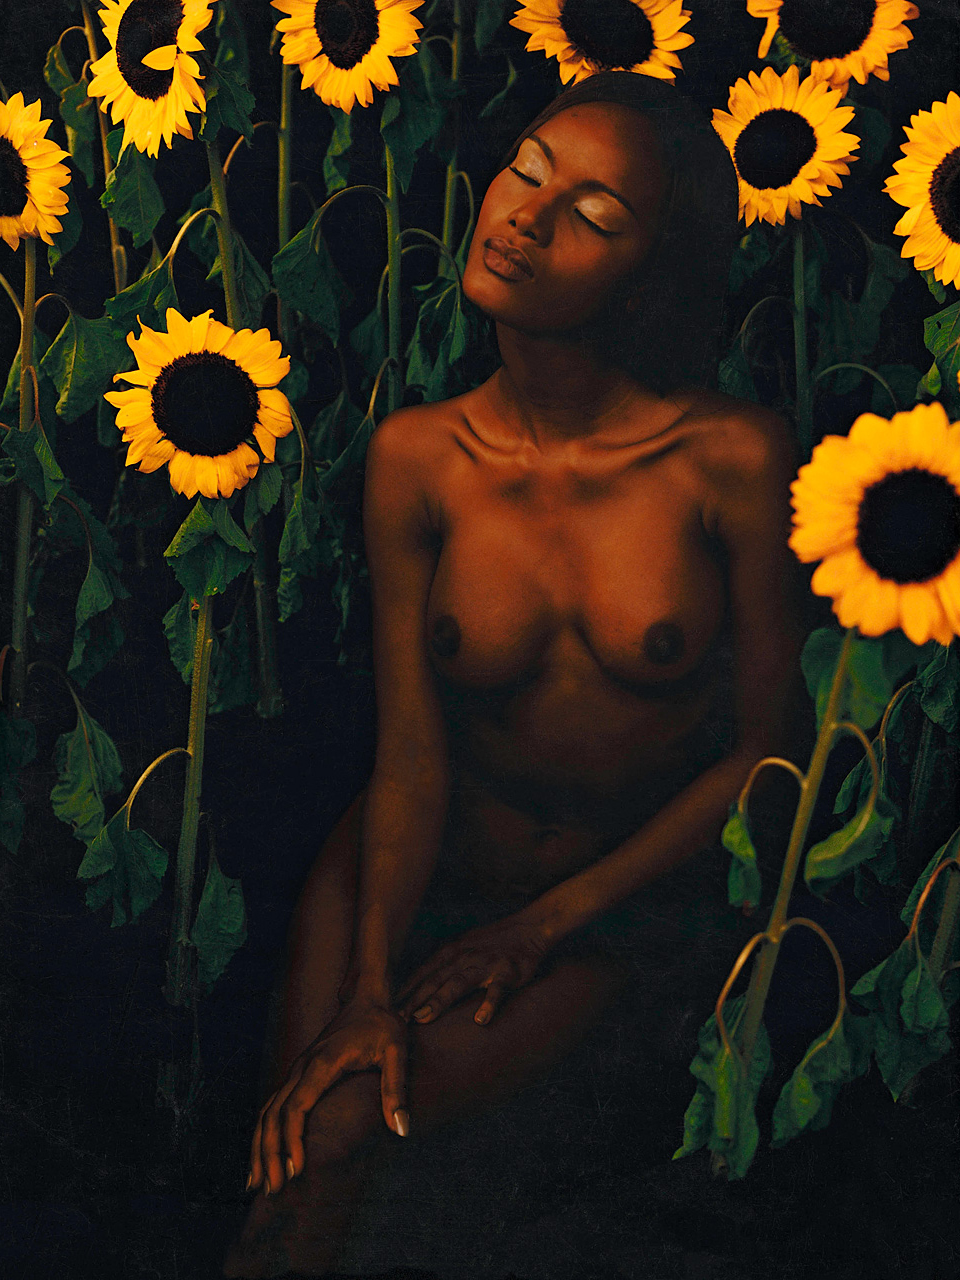 Margaret and Sunflowers (120cm x 160cm)